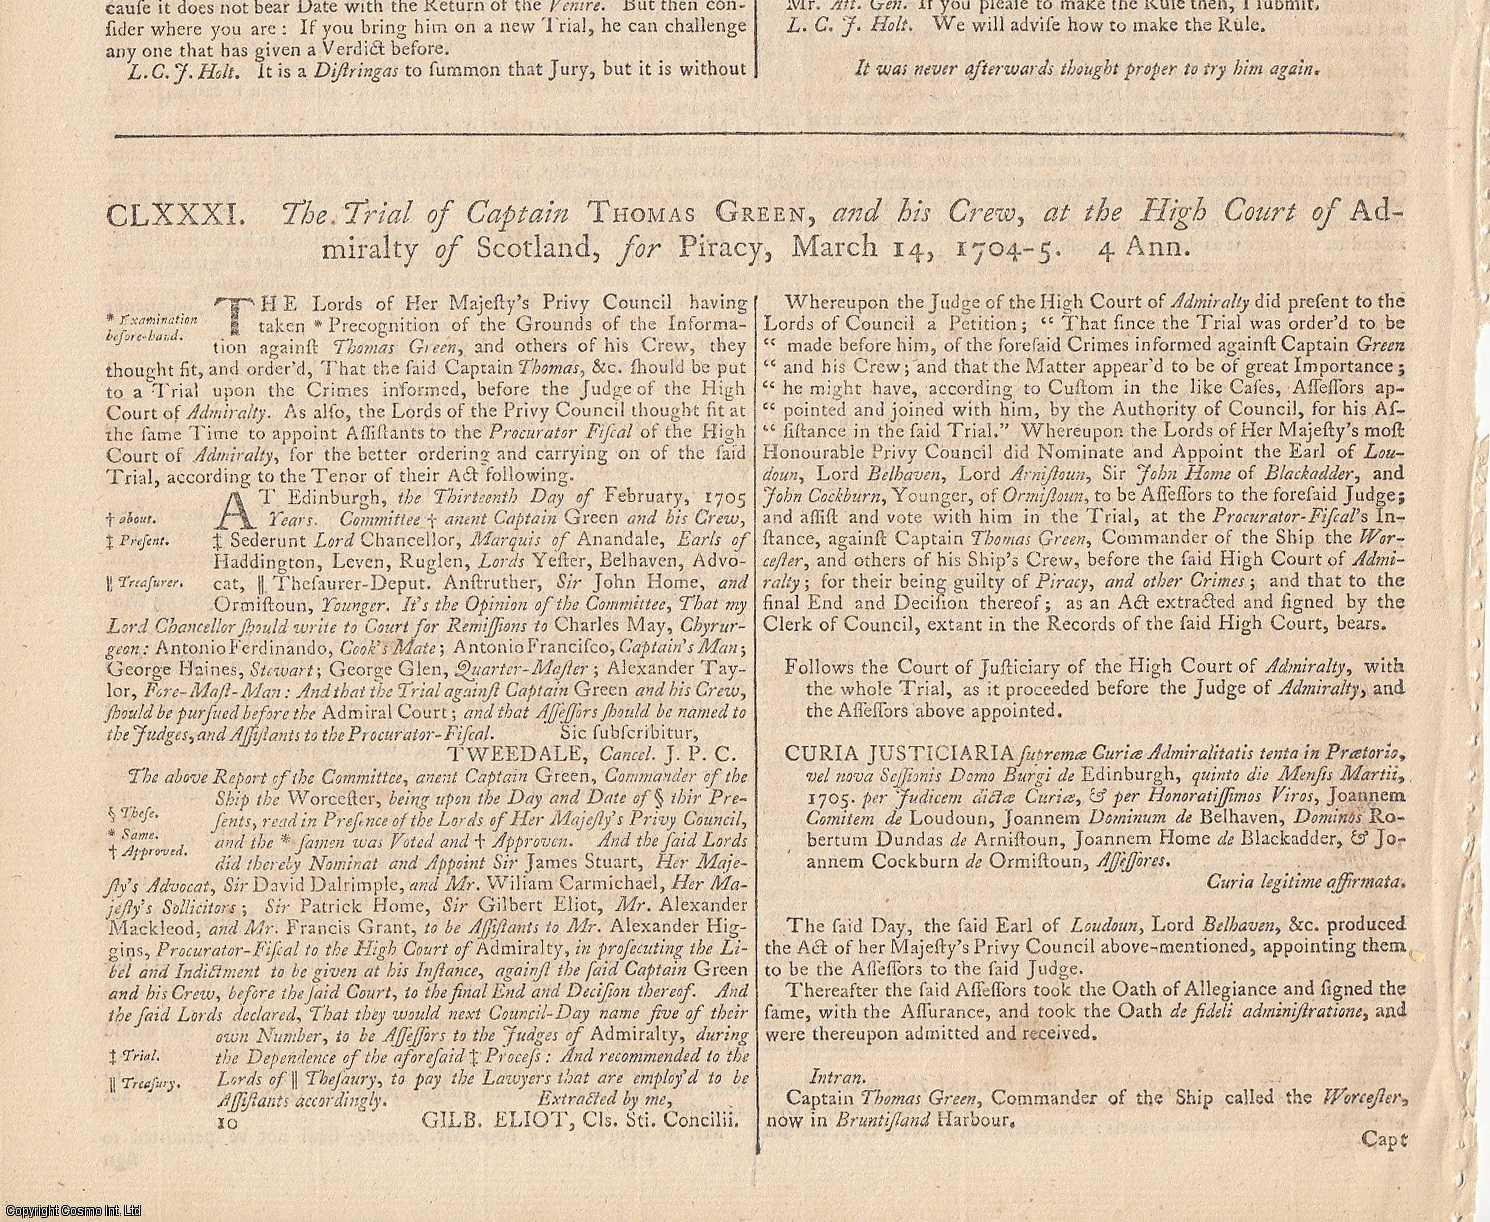 EAST INDIA COMPANY REVENGE.  The Trial of Captain Thomas Green, and his Crew, at the High Court of Admiralty of Scotland, for Piracy, March 14, 1704., [Trial].